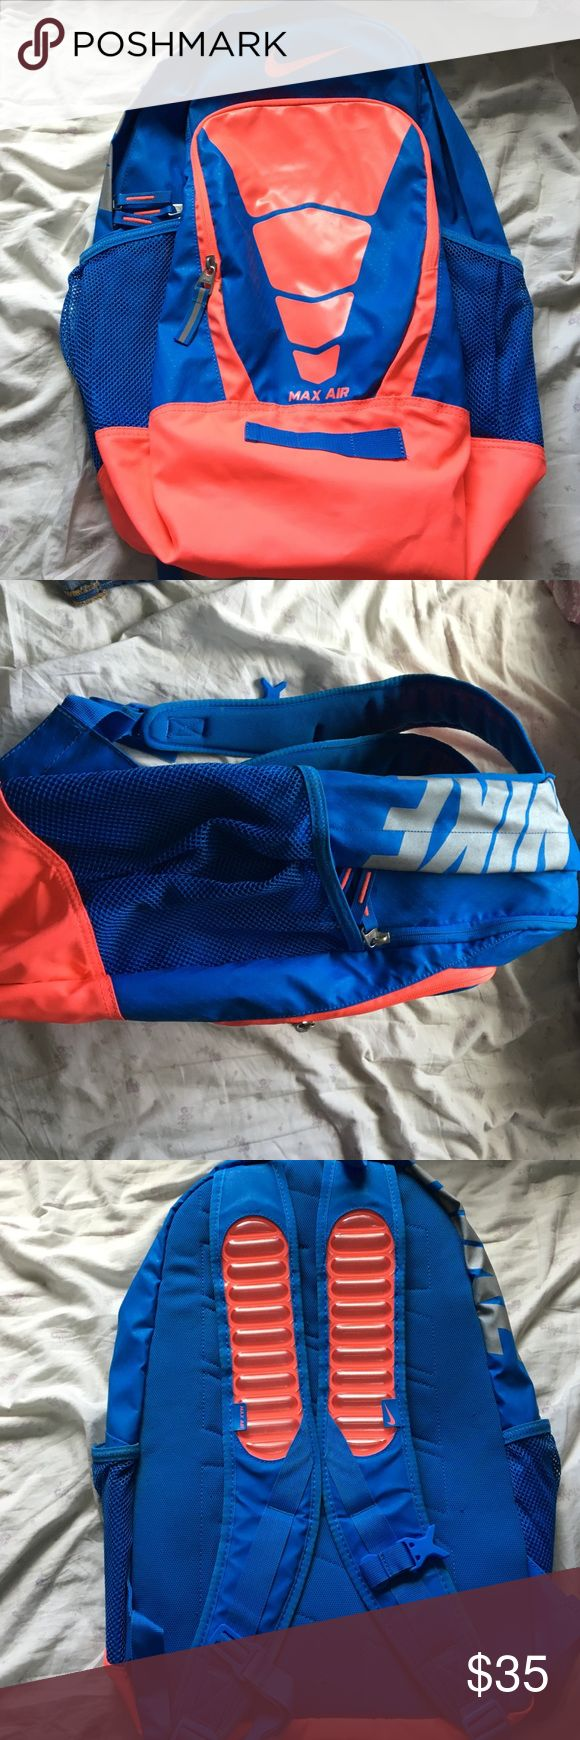 Nike Vapor Air Max Backpack- HyperPunch/Blue Unique backpack. Spacious. Laptop sleeve. Air max on the straps. Once been used a handful of times. Like new condition! Nike Bags Backpacks